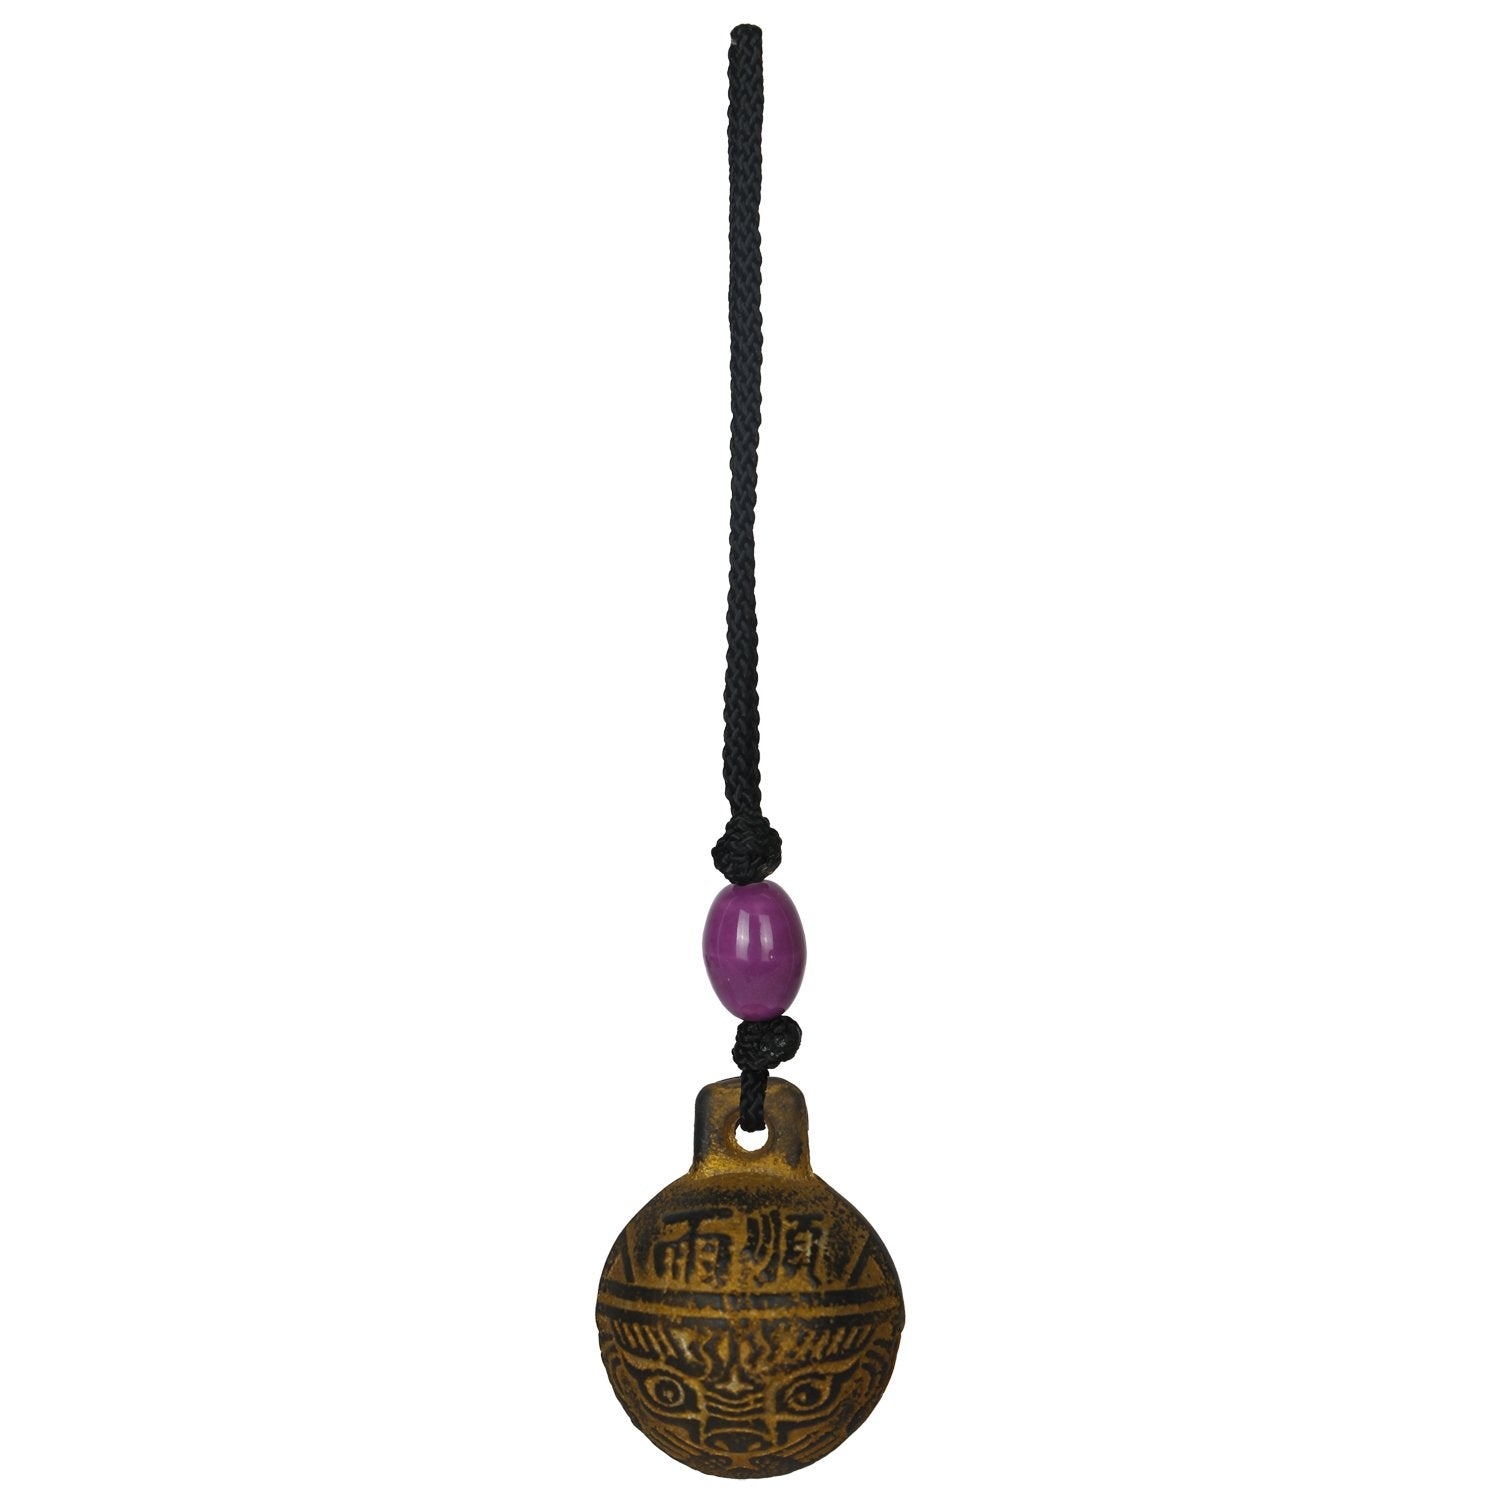 Spirit Bell - Inspiration full product image